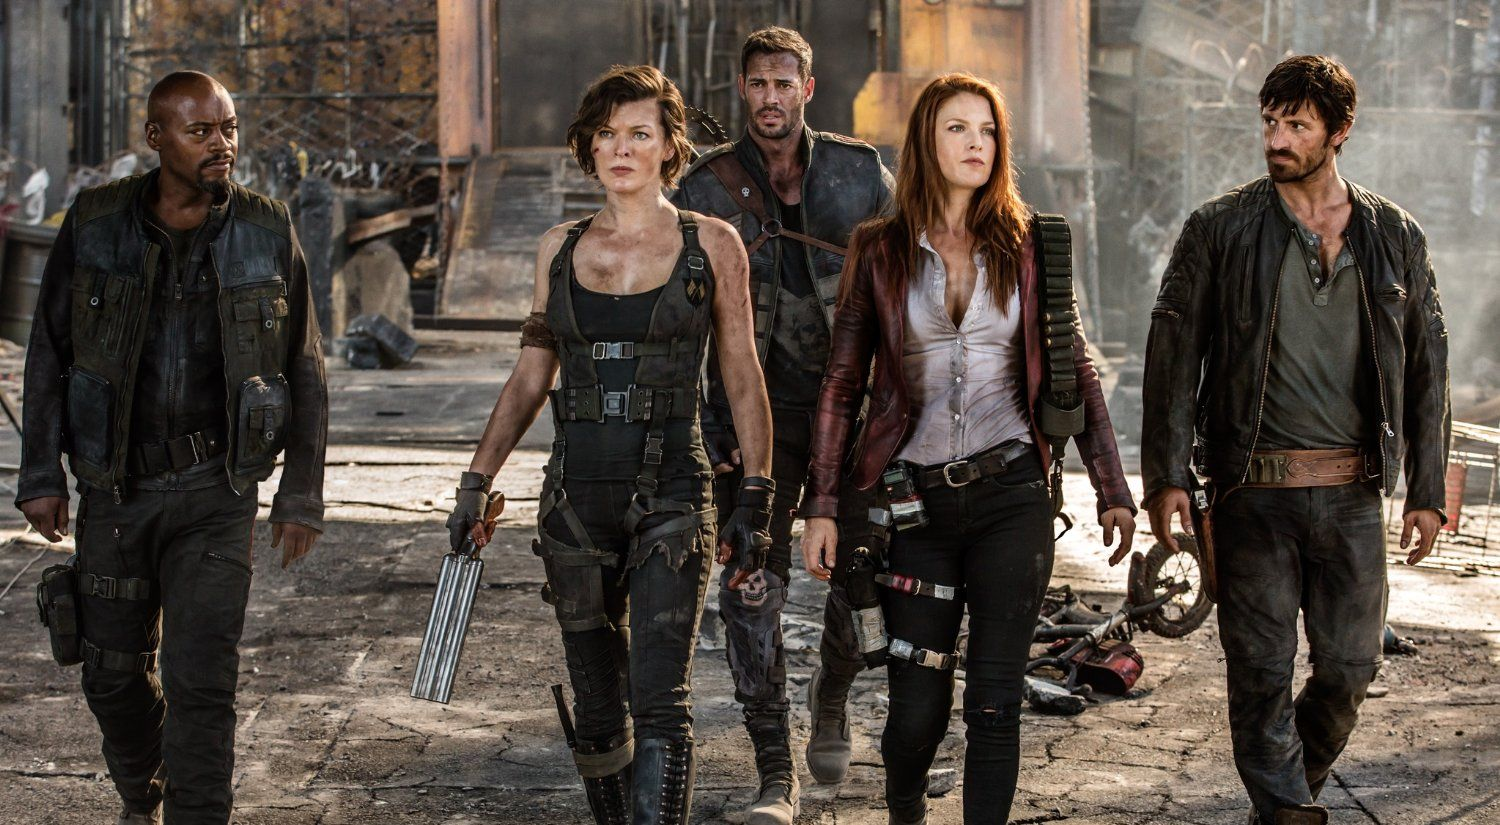 'Resident Evil: The Final Chapter' leaves the franchise high and hopeful